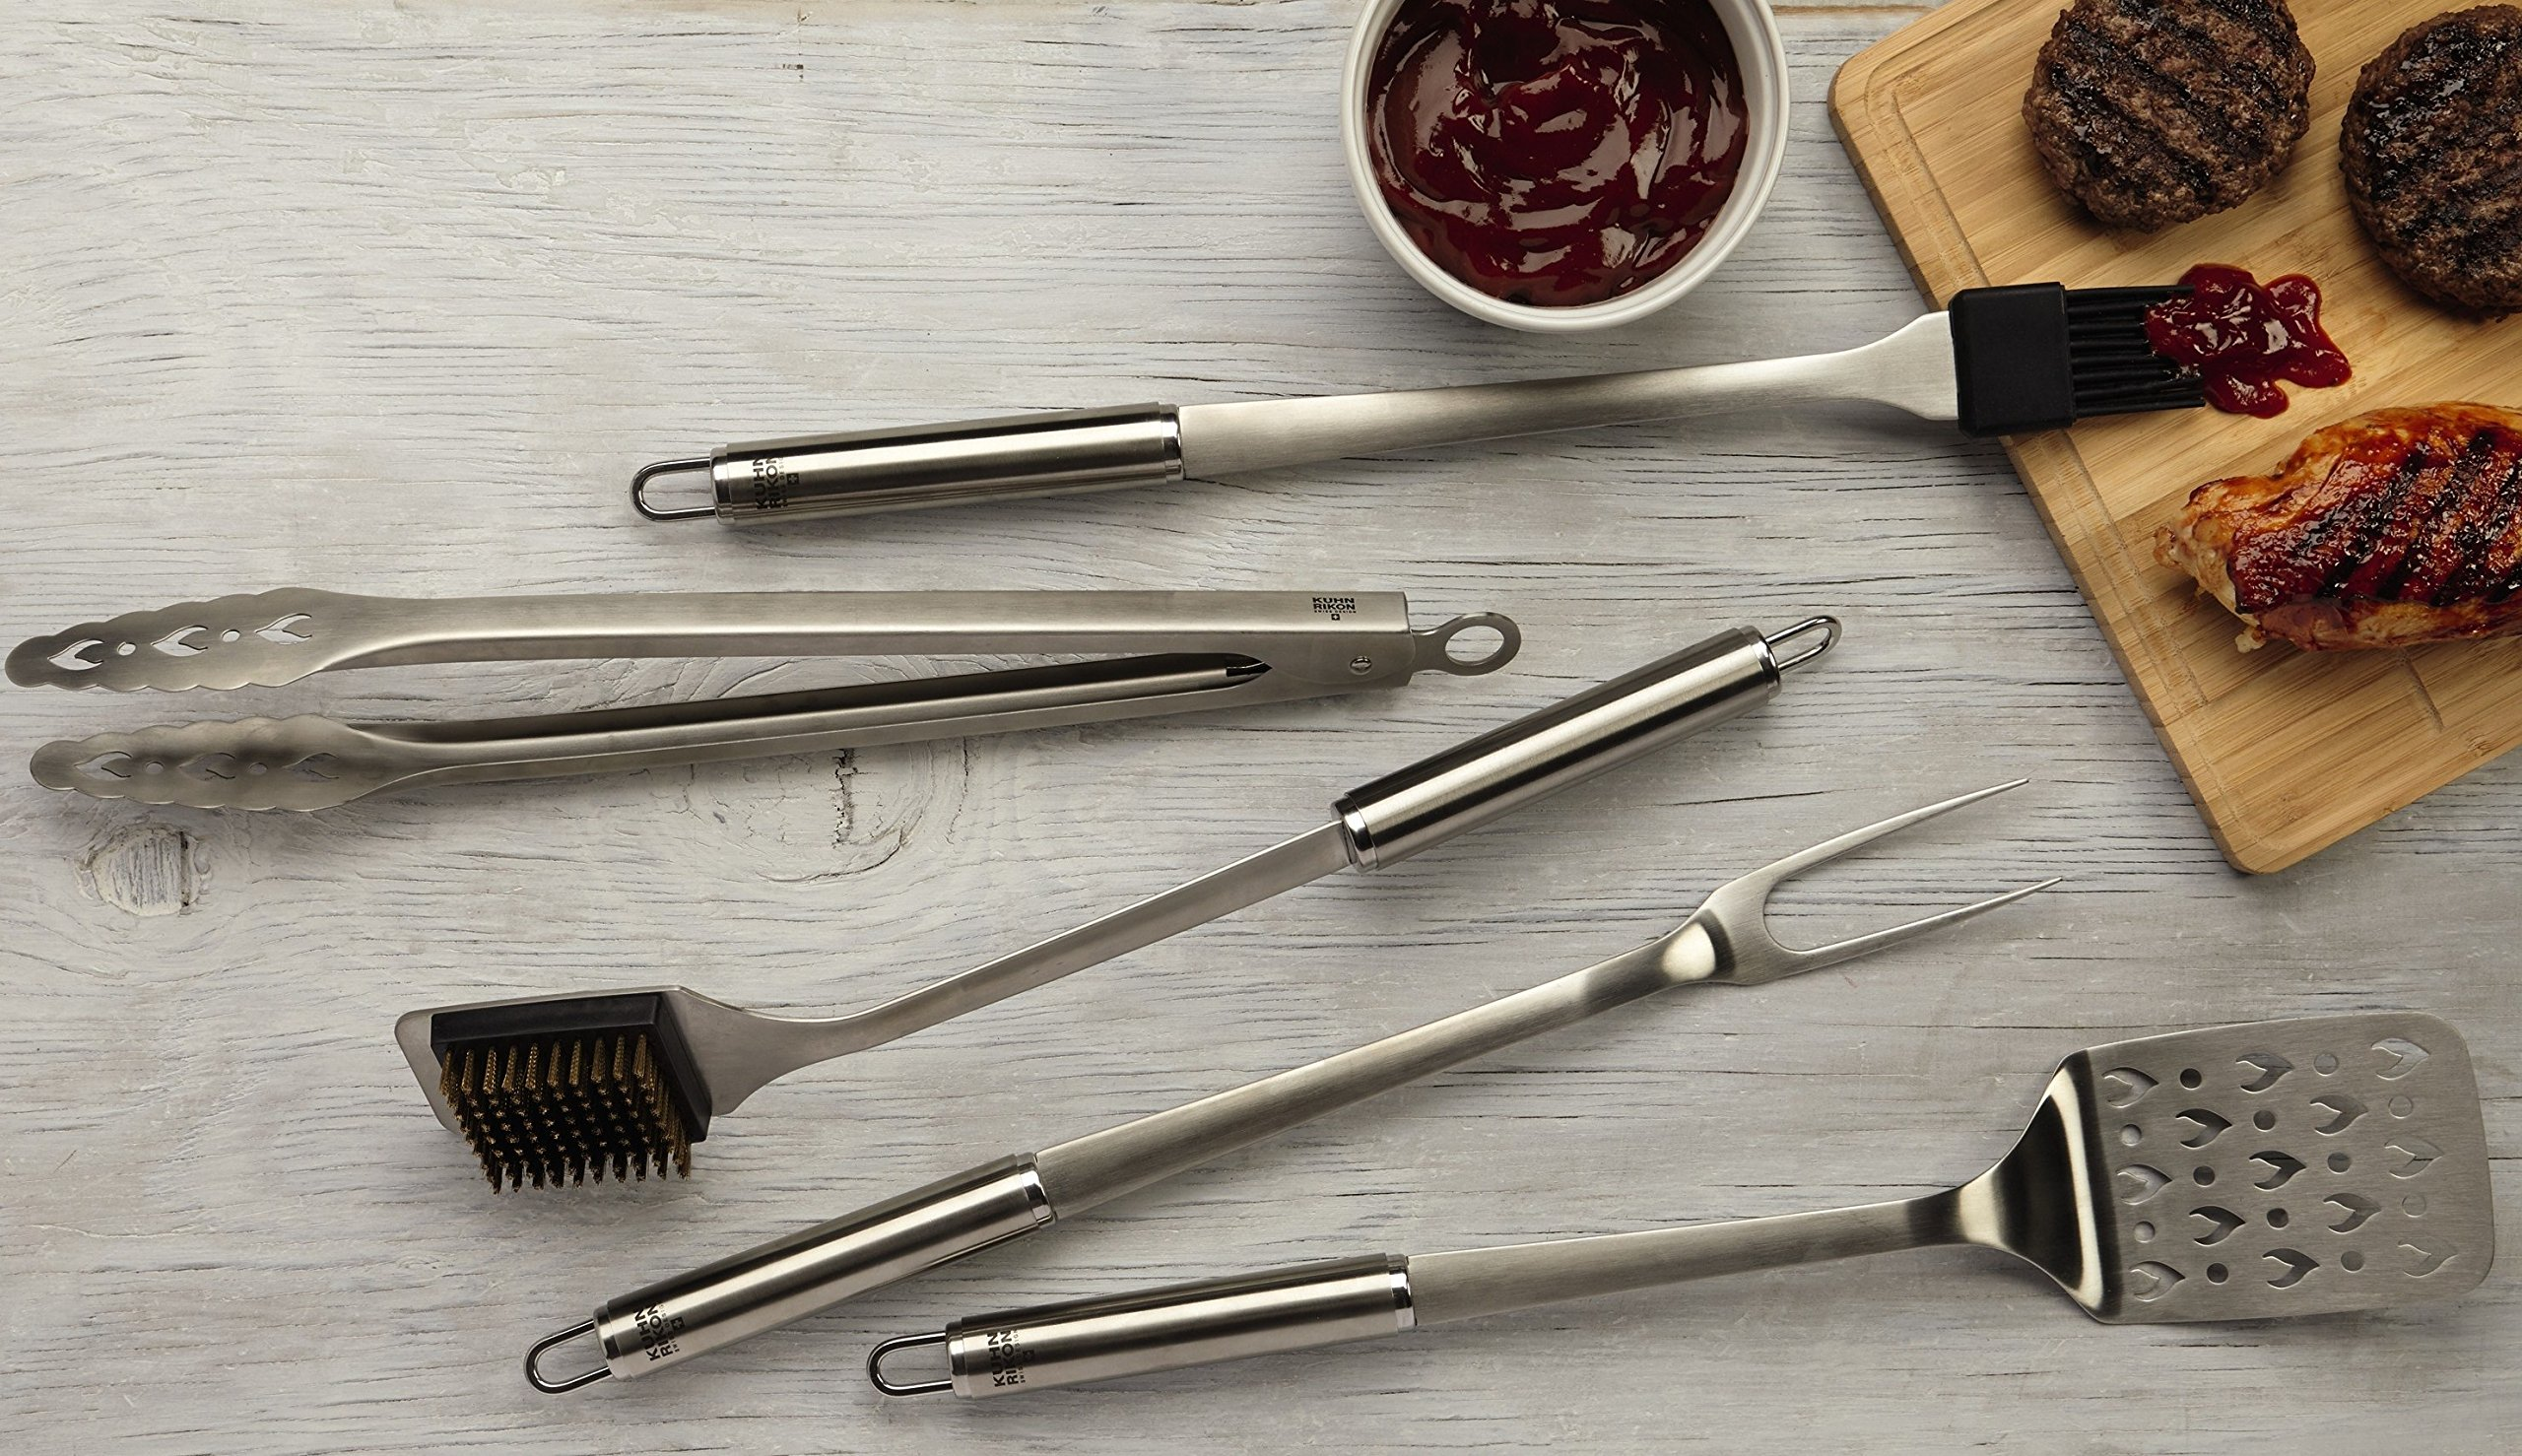 Kuhn Rikon 5 Piece BBQ Tool Set with Case, Stainless Steel by Kuhn Rikon (Image #3)